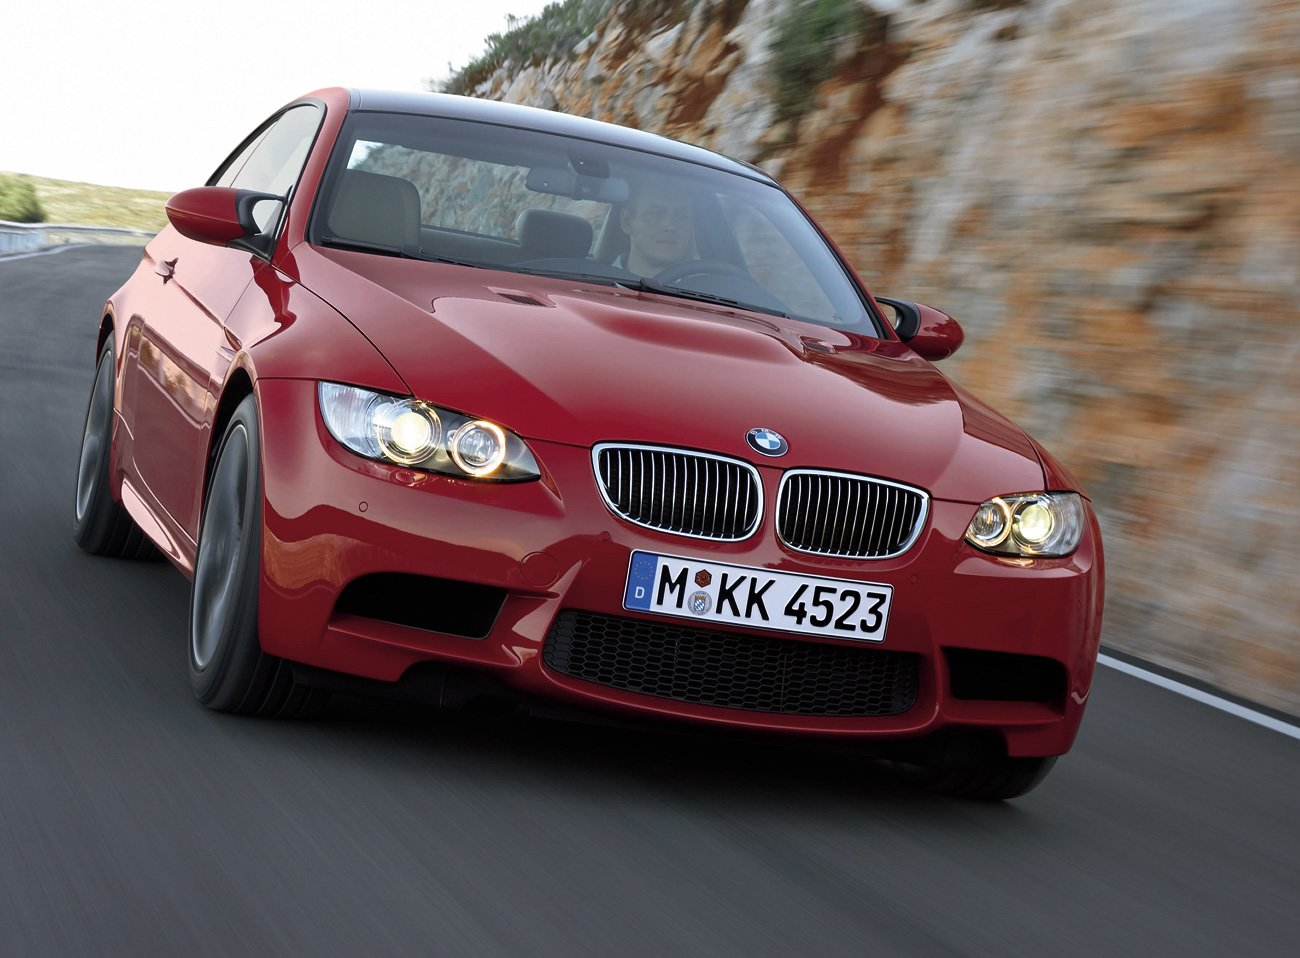 Latest Bmw Cars Prices In Chennai Its My Car Club Free Download